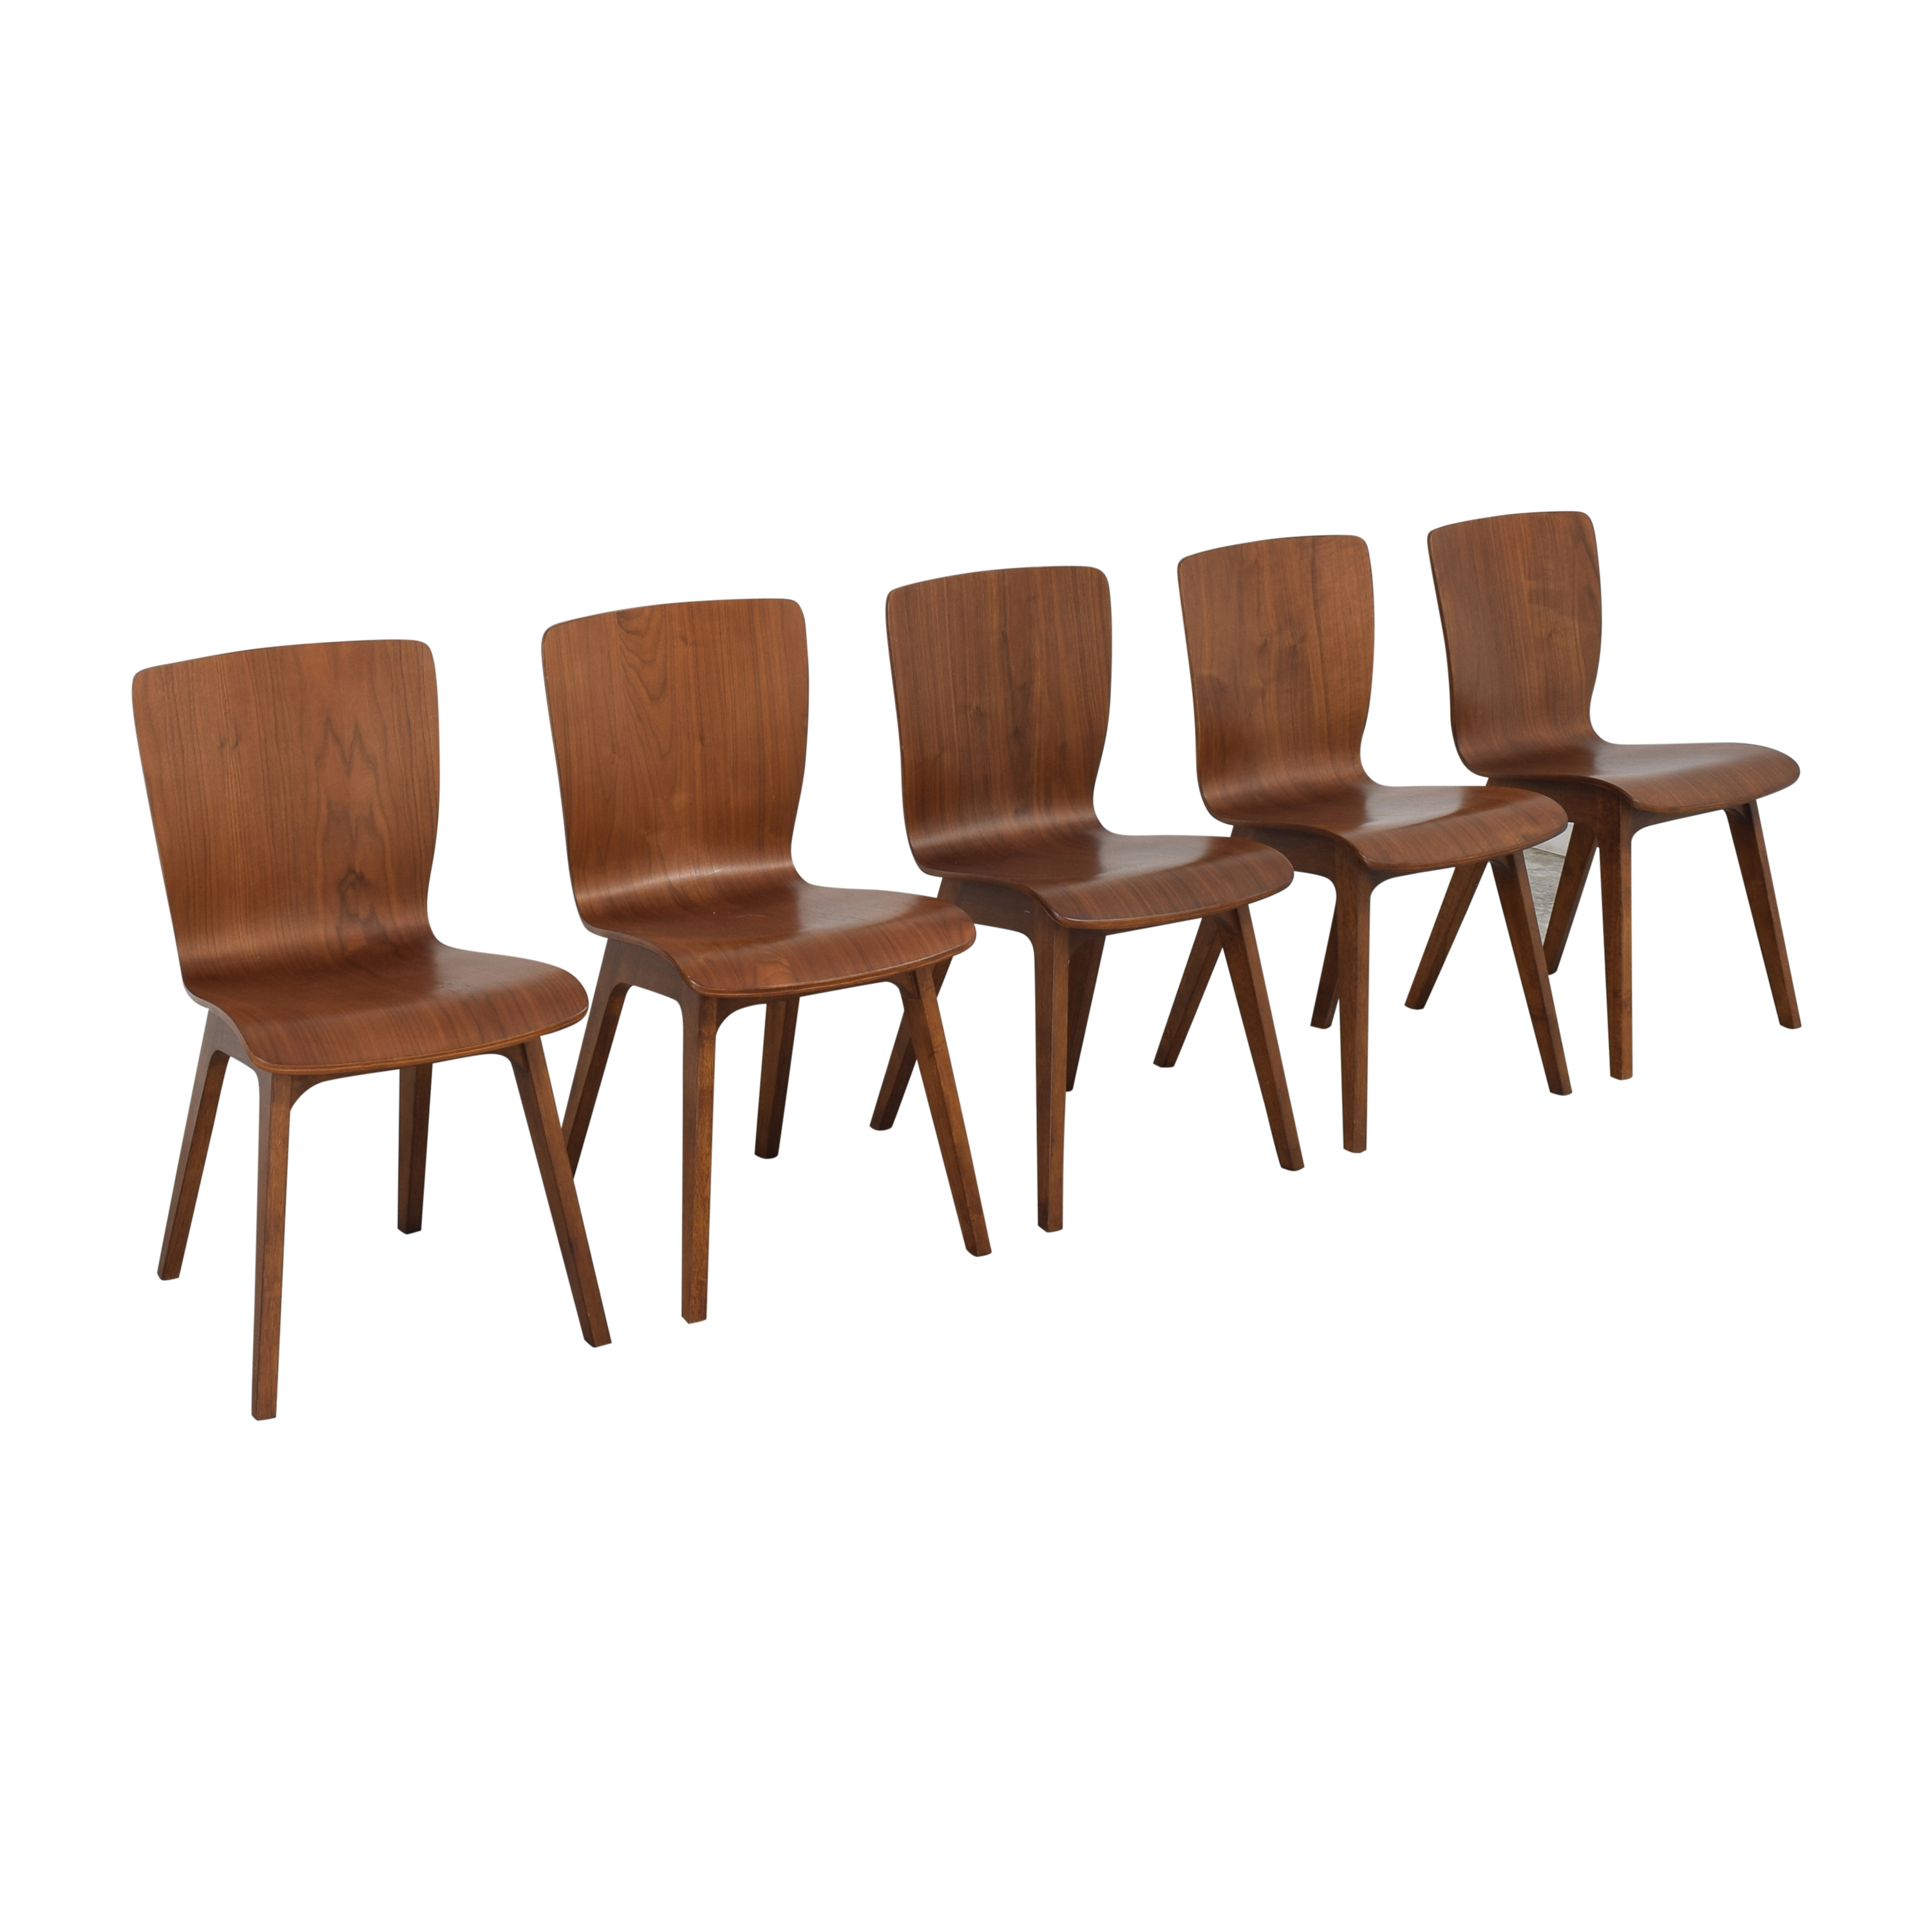 West Elm West Elm Crest Bentwood Dining Chairs dimensions